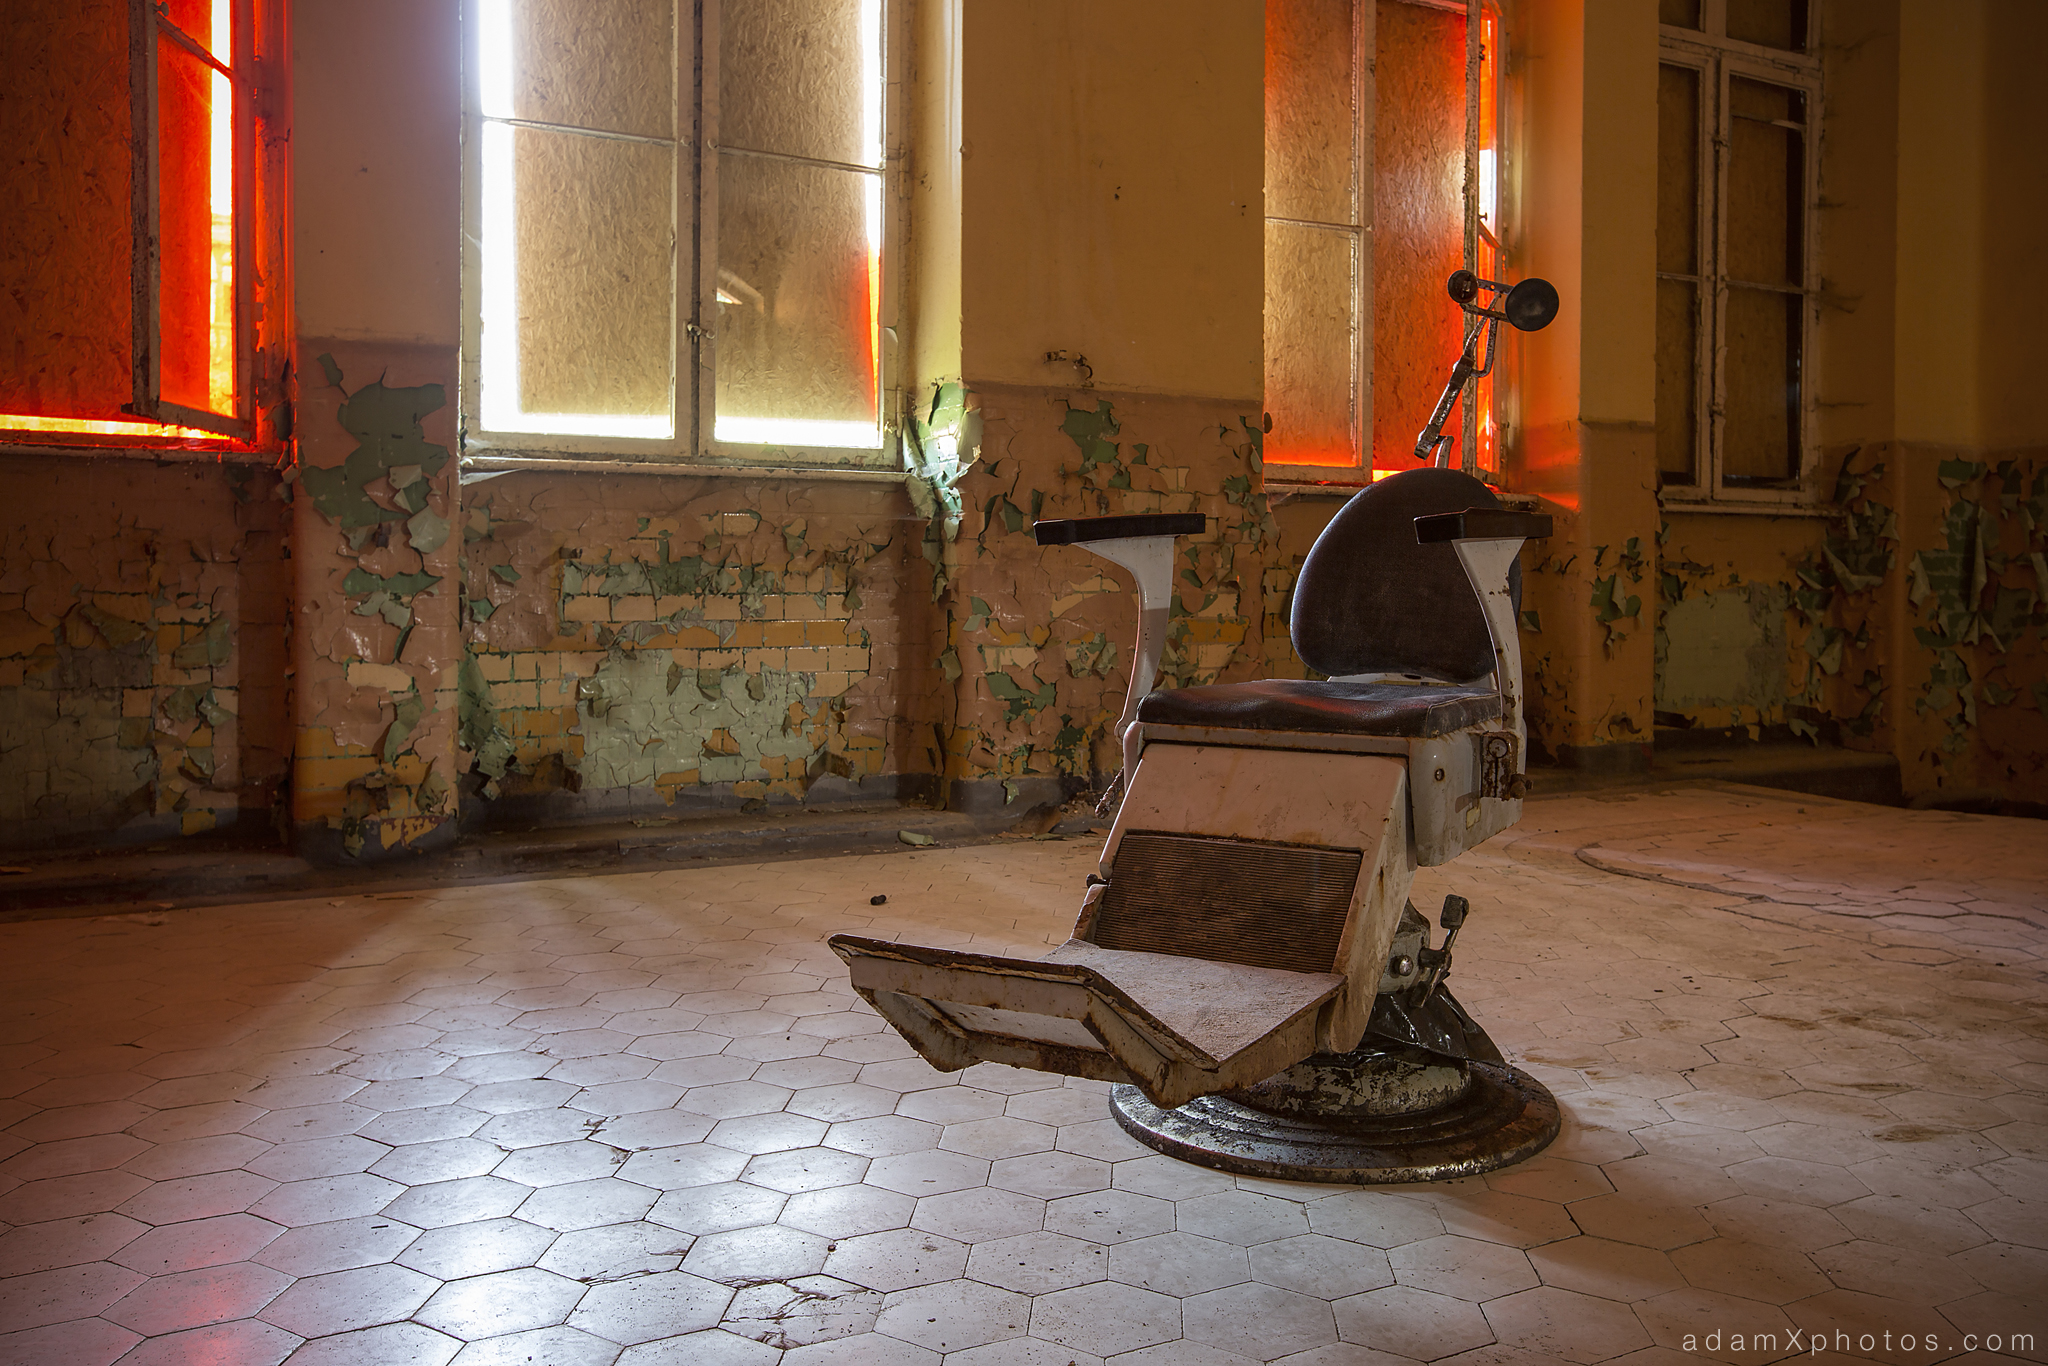 Adam X Urbex Beelitz Heilstatten Germany Urban Exploration Mens Men's Bathhouse Bath House Hospital Decay Lost Abandoned Hidden chair red room